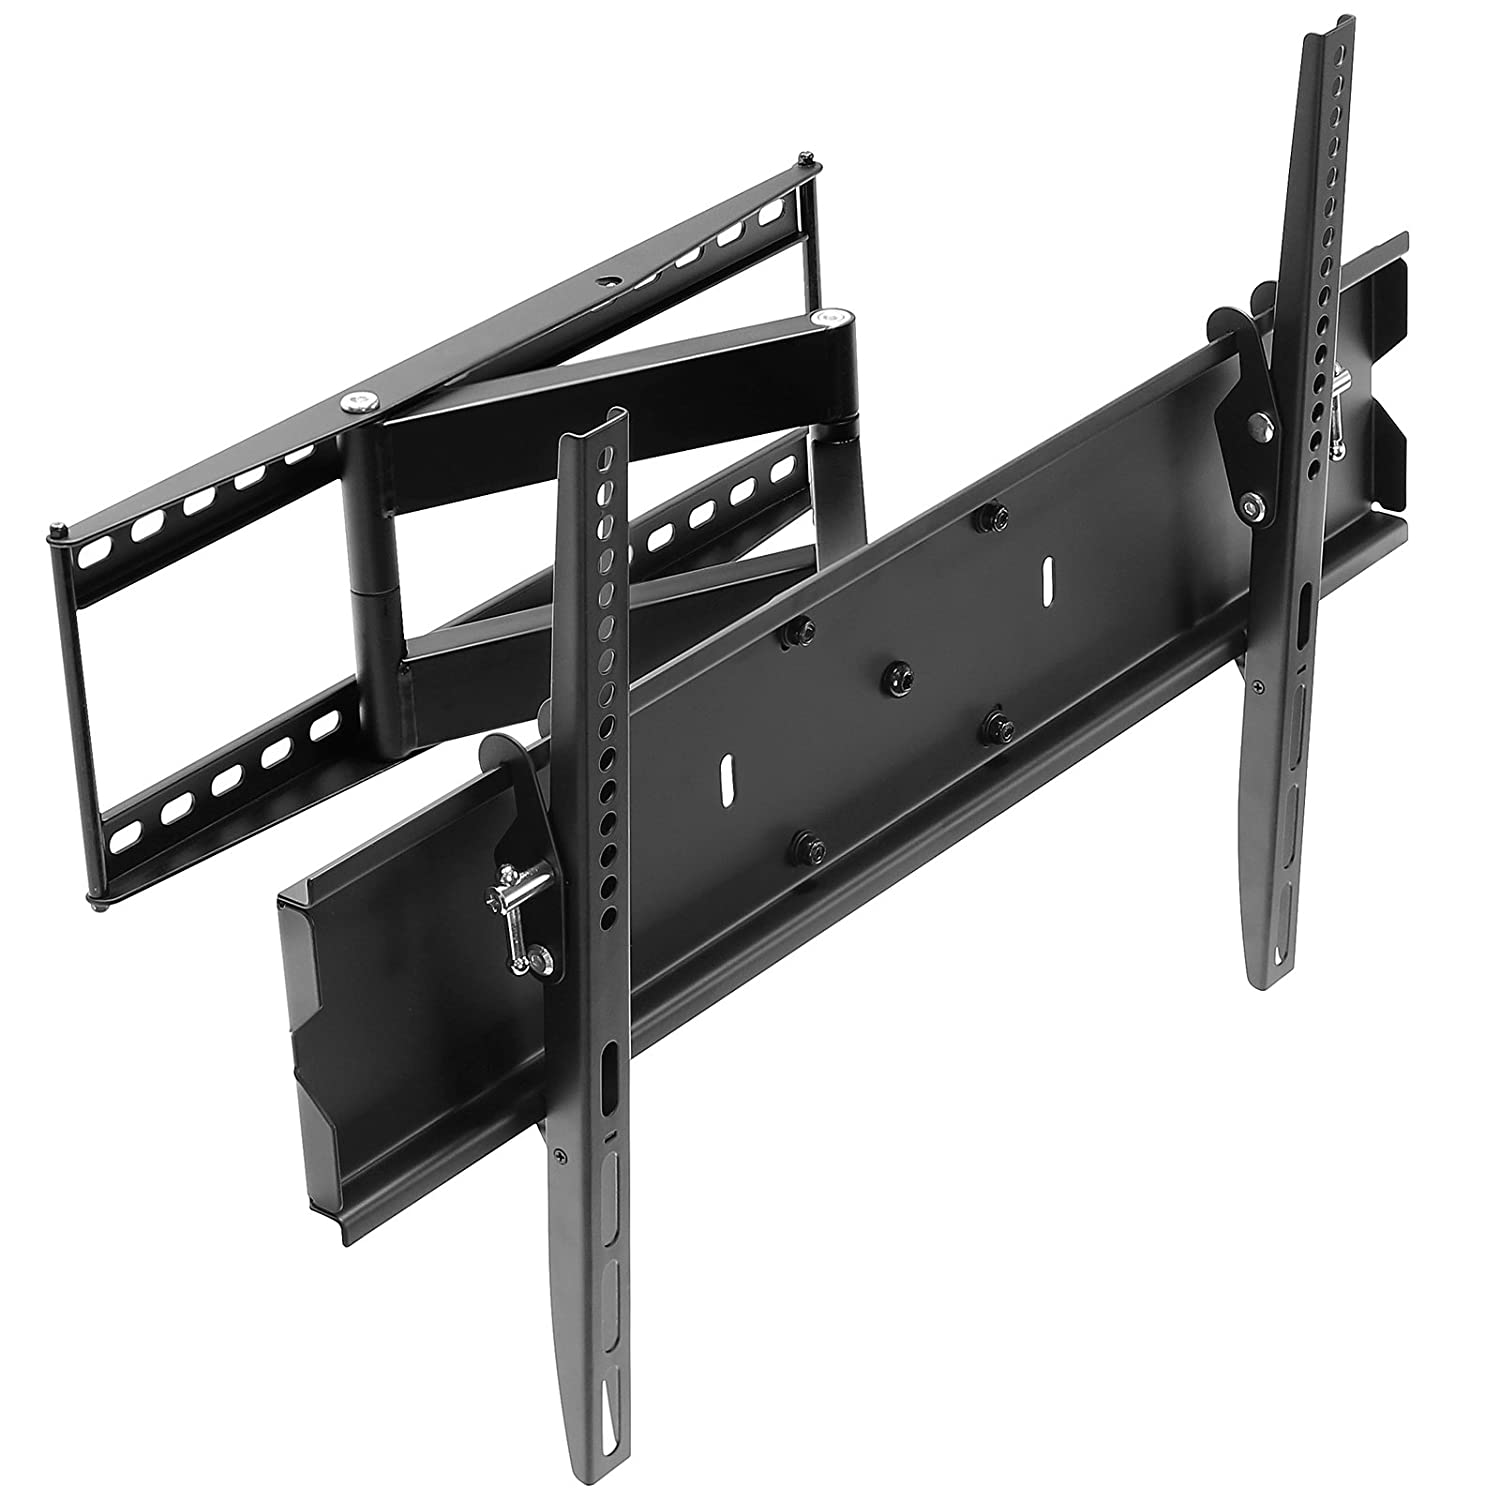 How to Safely Wall Mount Your TV | Safety com